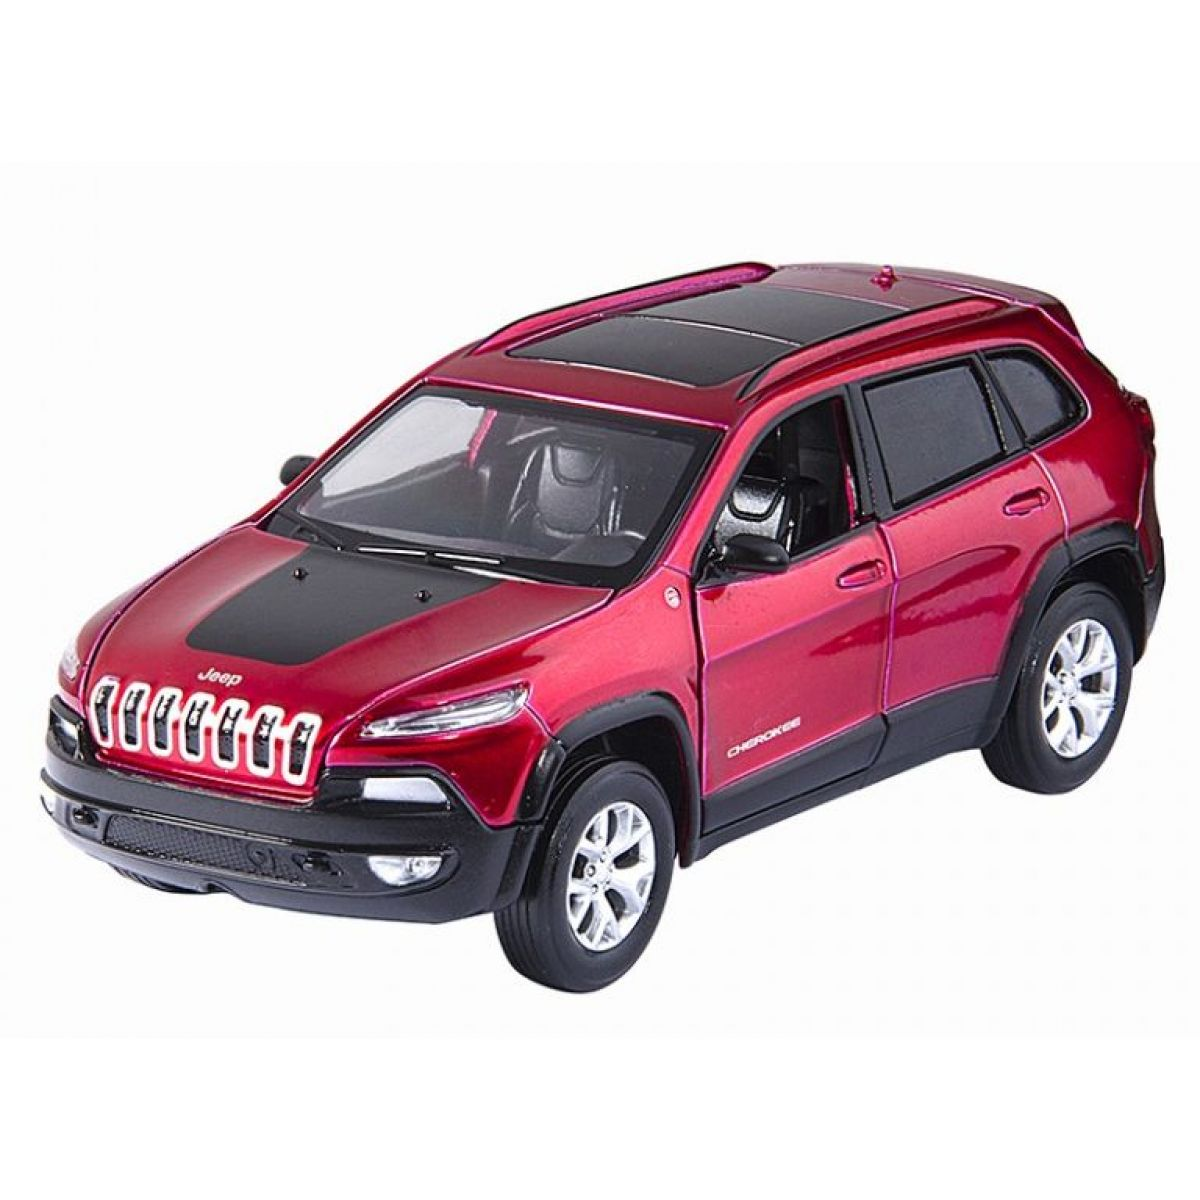 HM Studio kovový model Jeep Cherokee 1:32